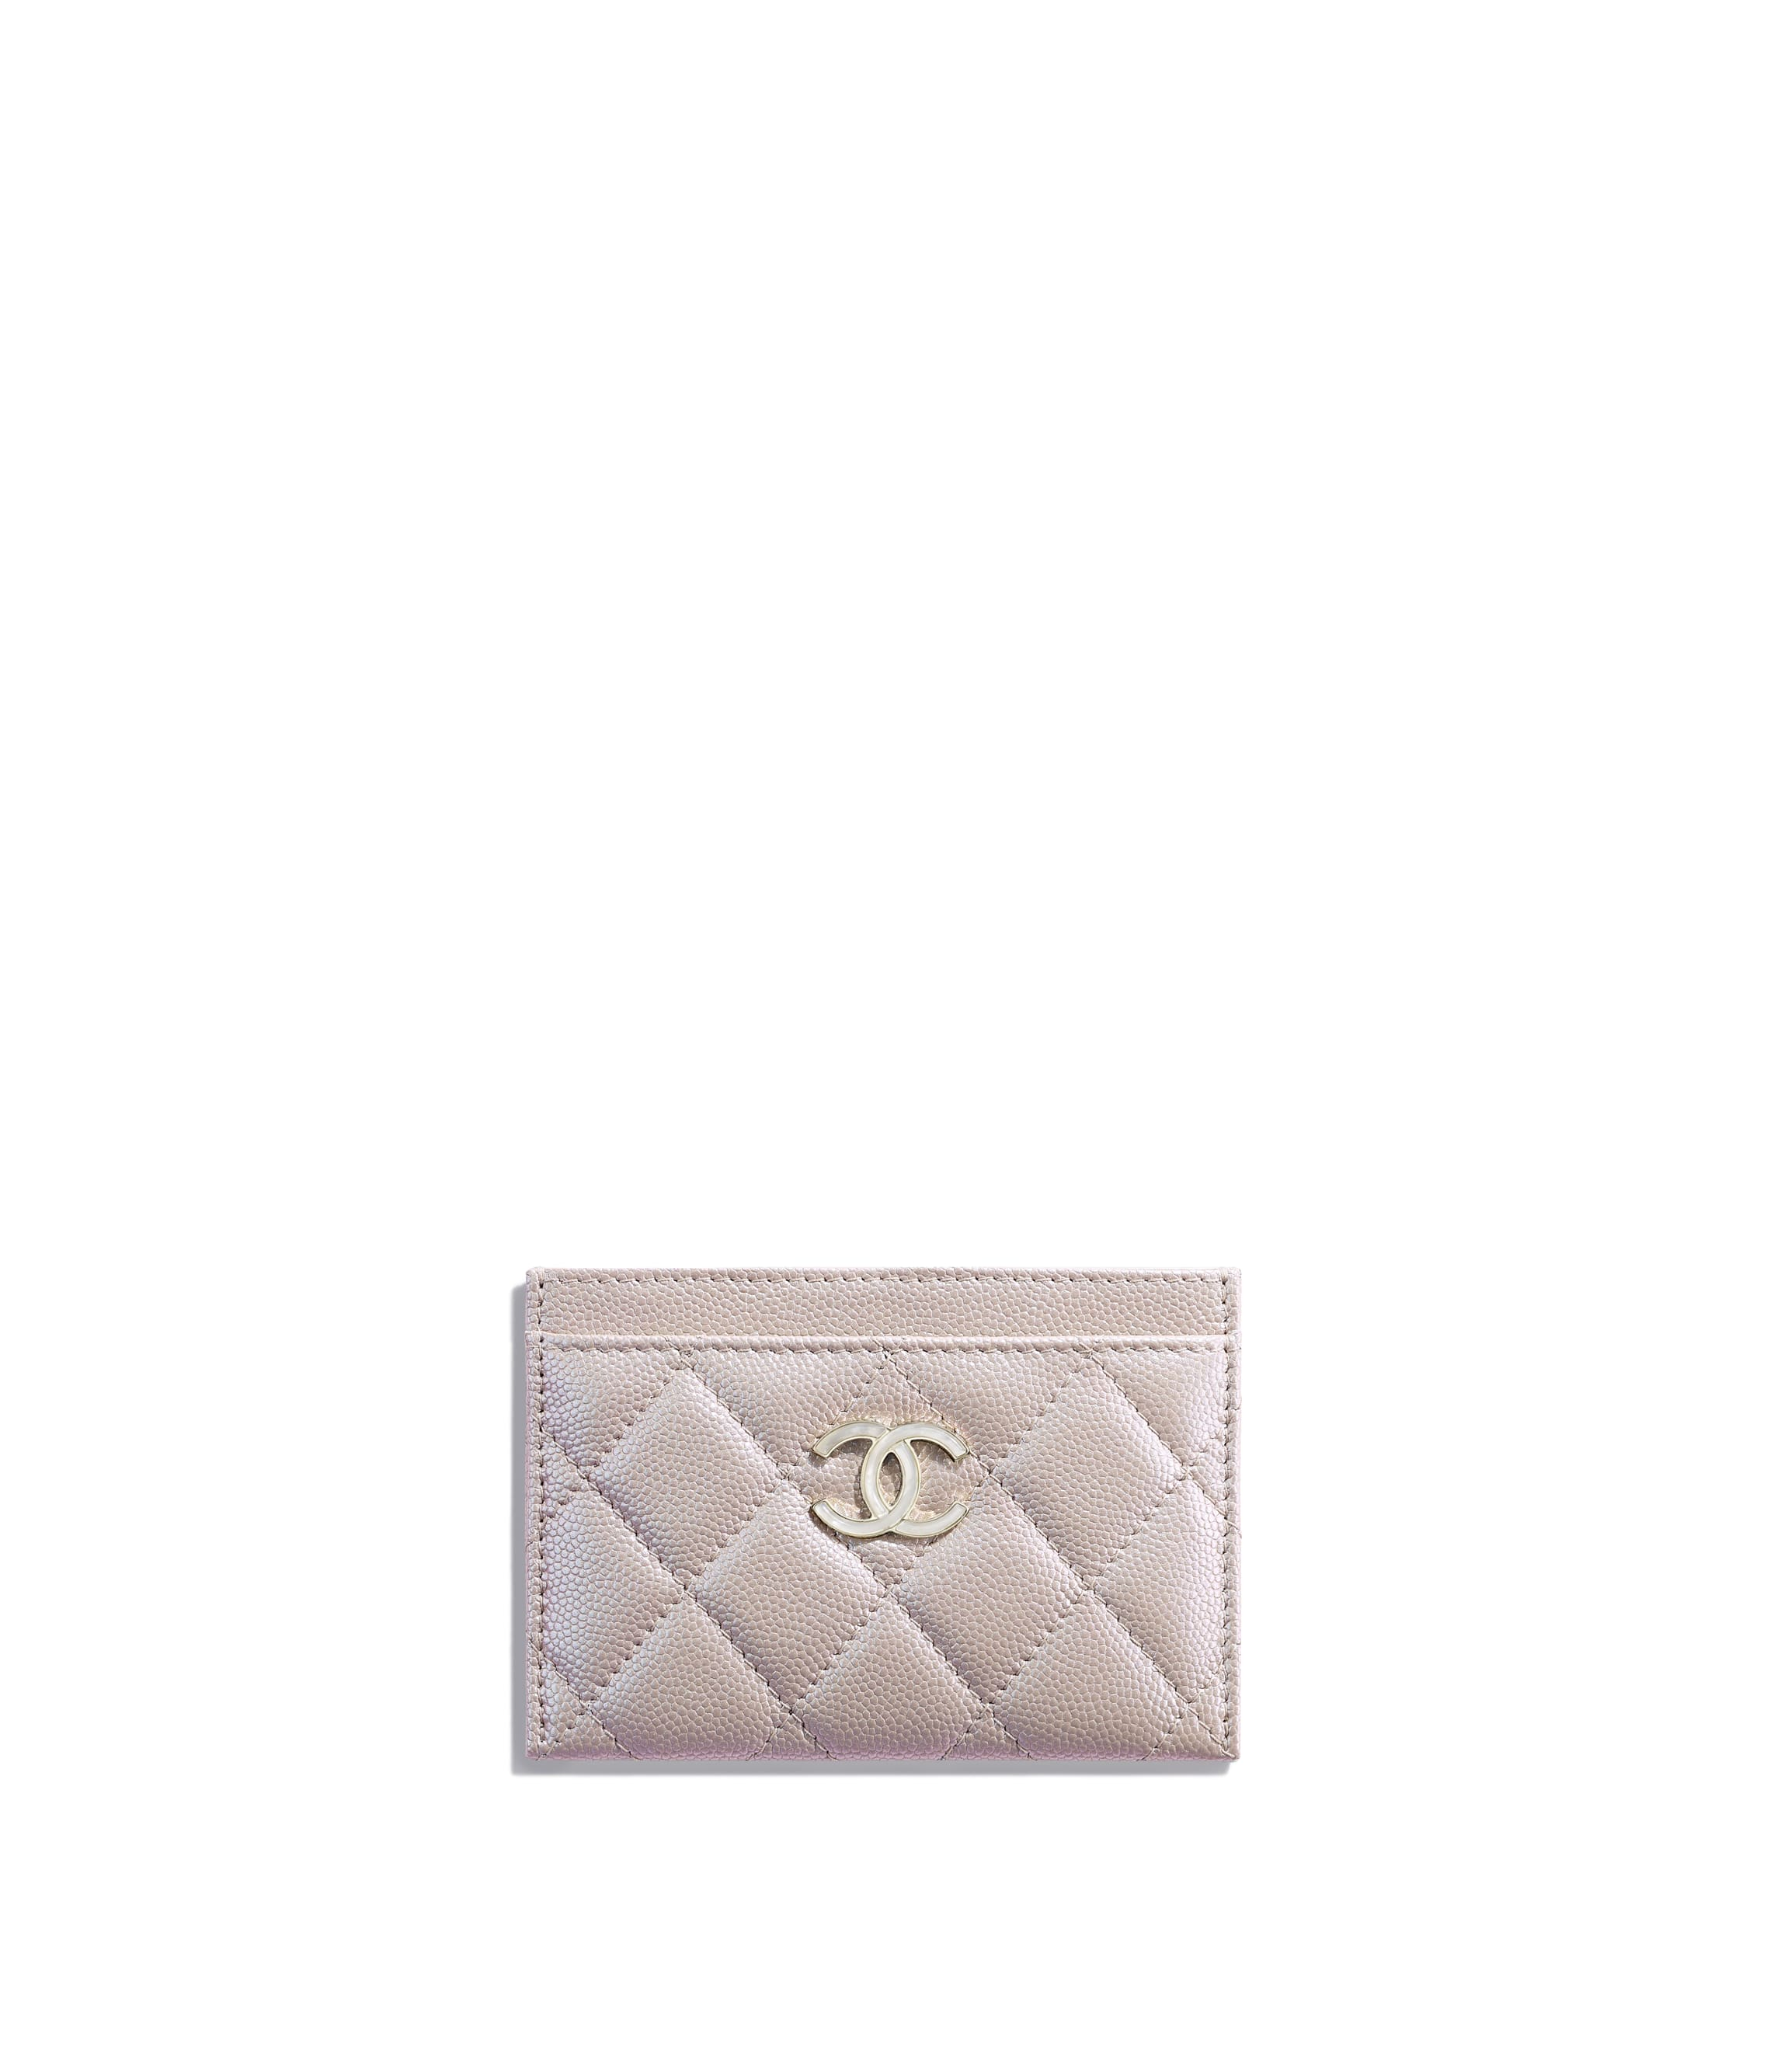 3b0651705d59c0 Card Holders - Small Leather Goods - CHANEL